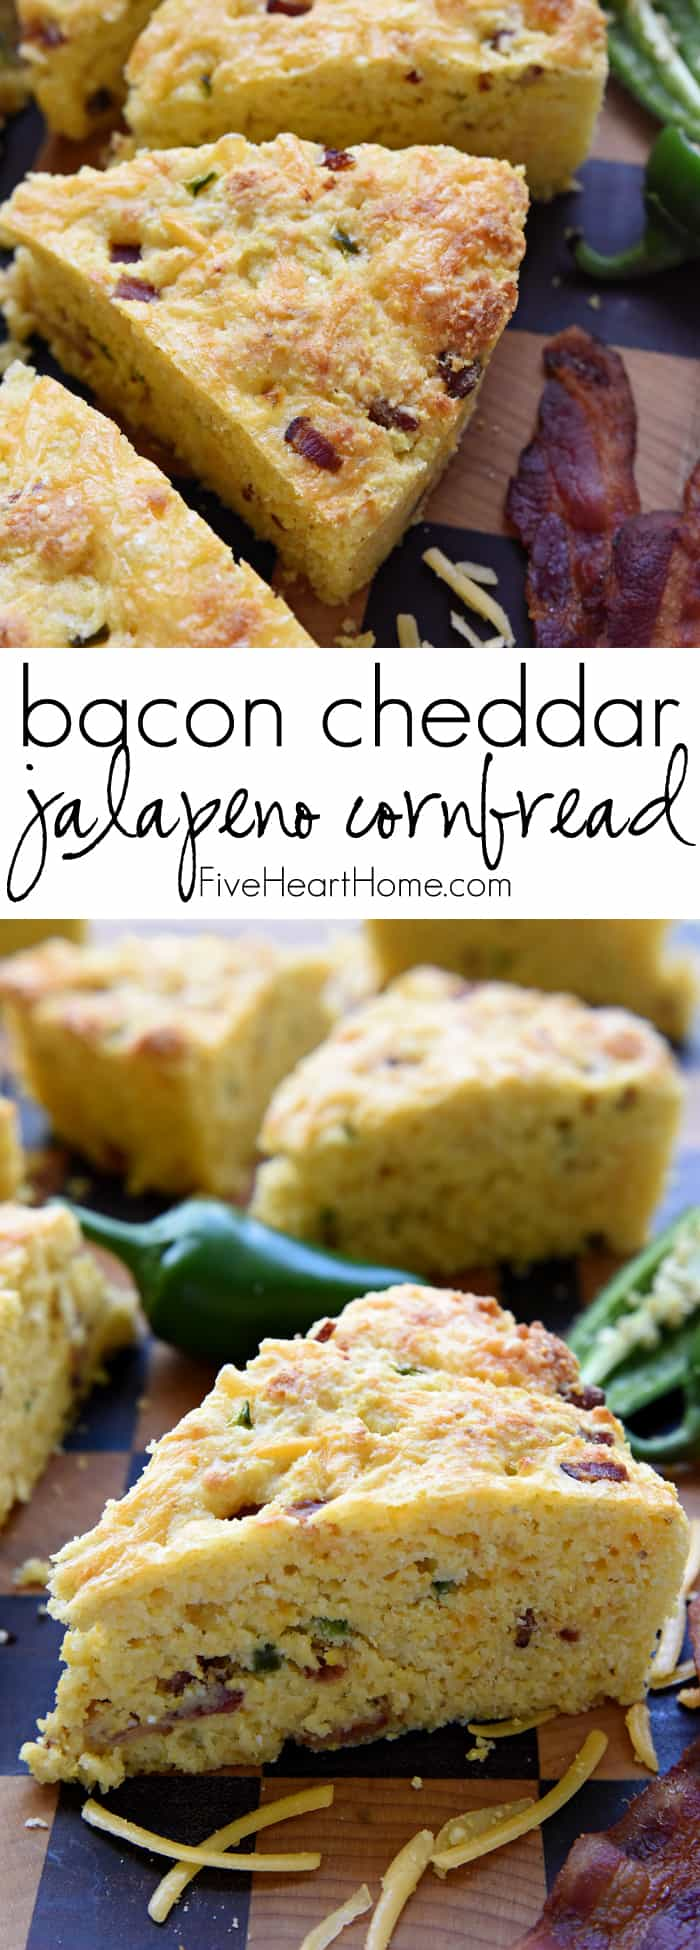 Bacon Cheddar Jalapeño Cornbread Collage with Text Overlay